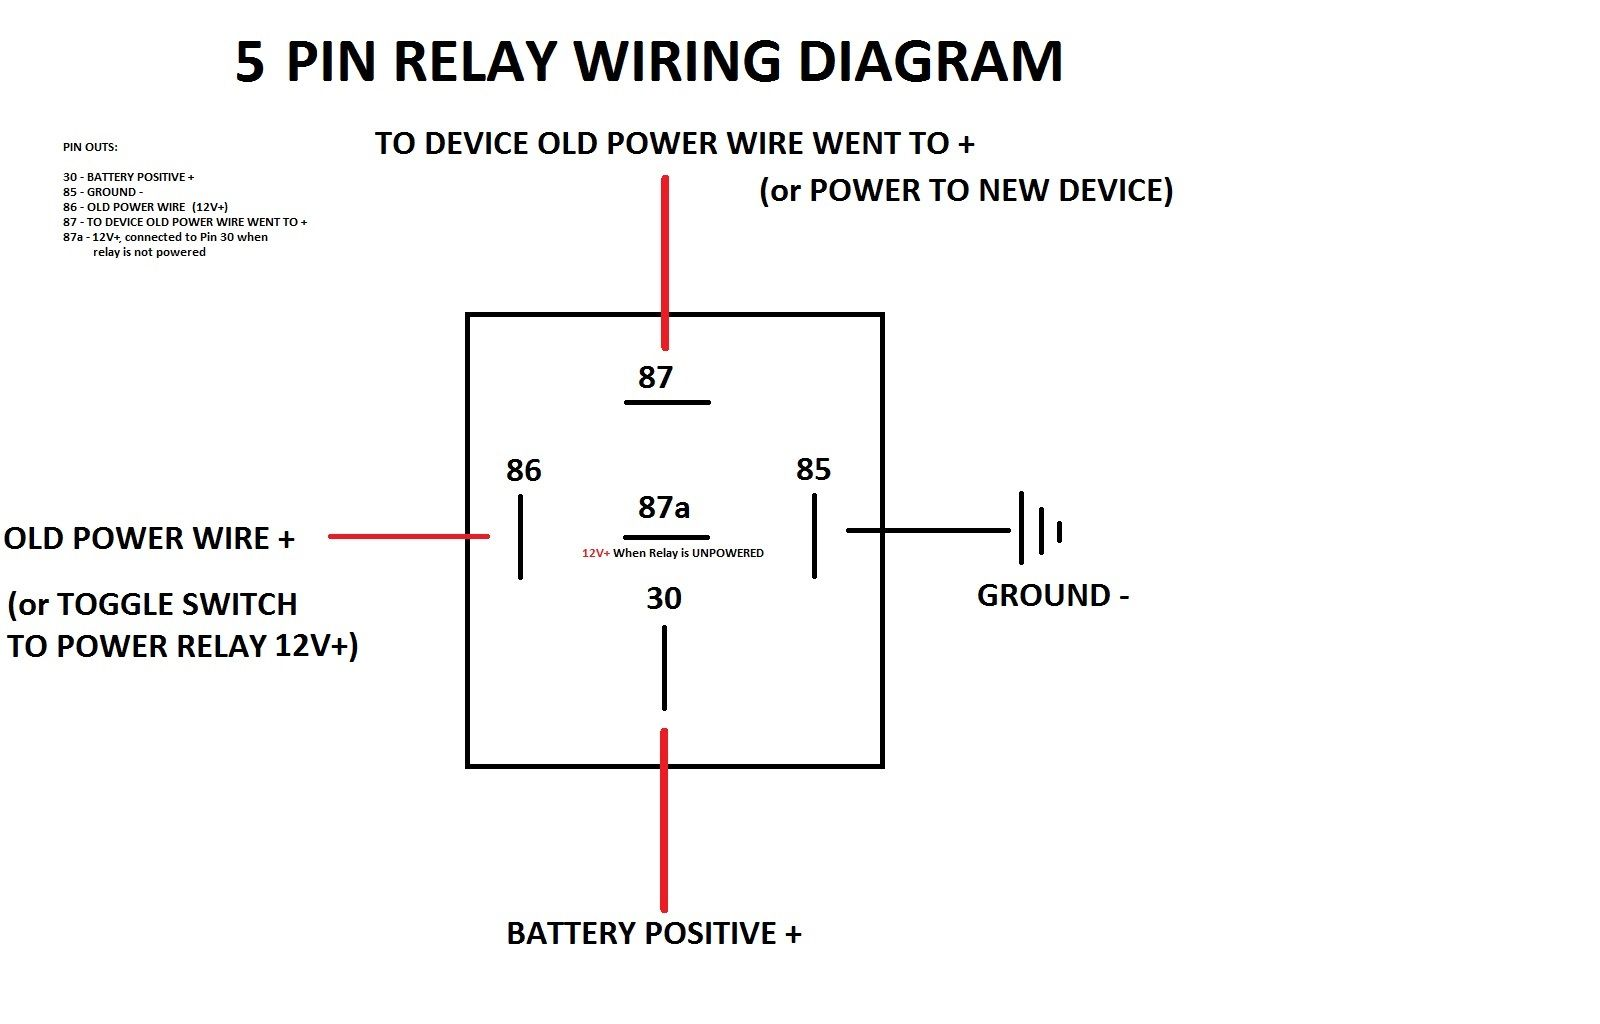 Simple 5 Pin Relay Diagram | DSMtuners Wire, Trucks, Tools, House Design,